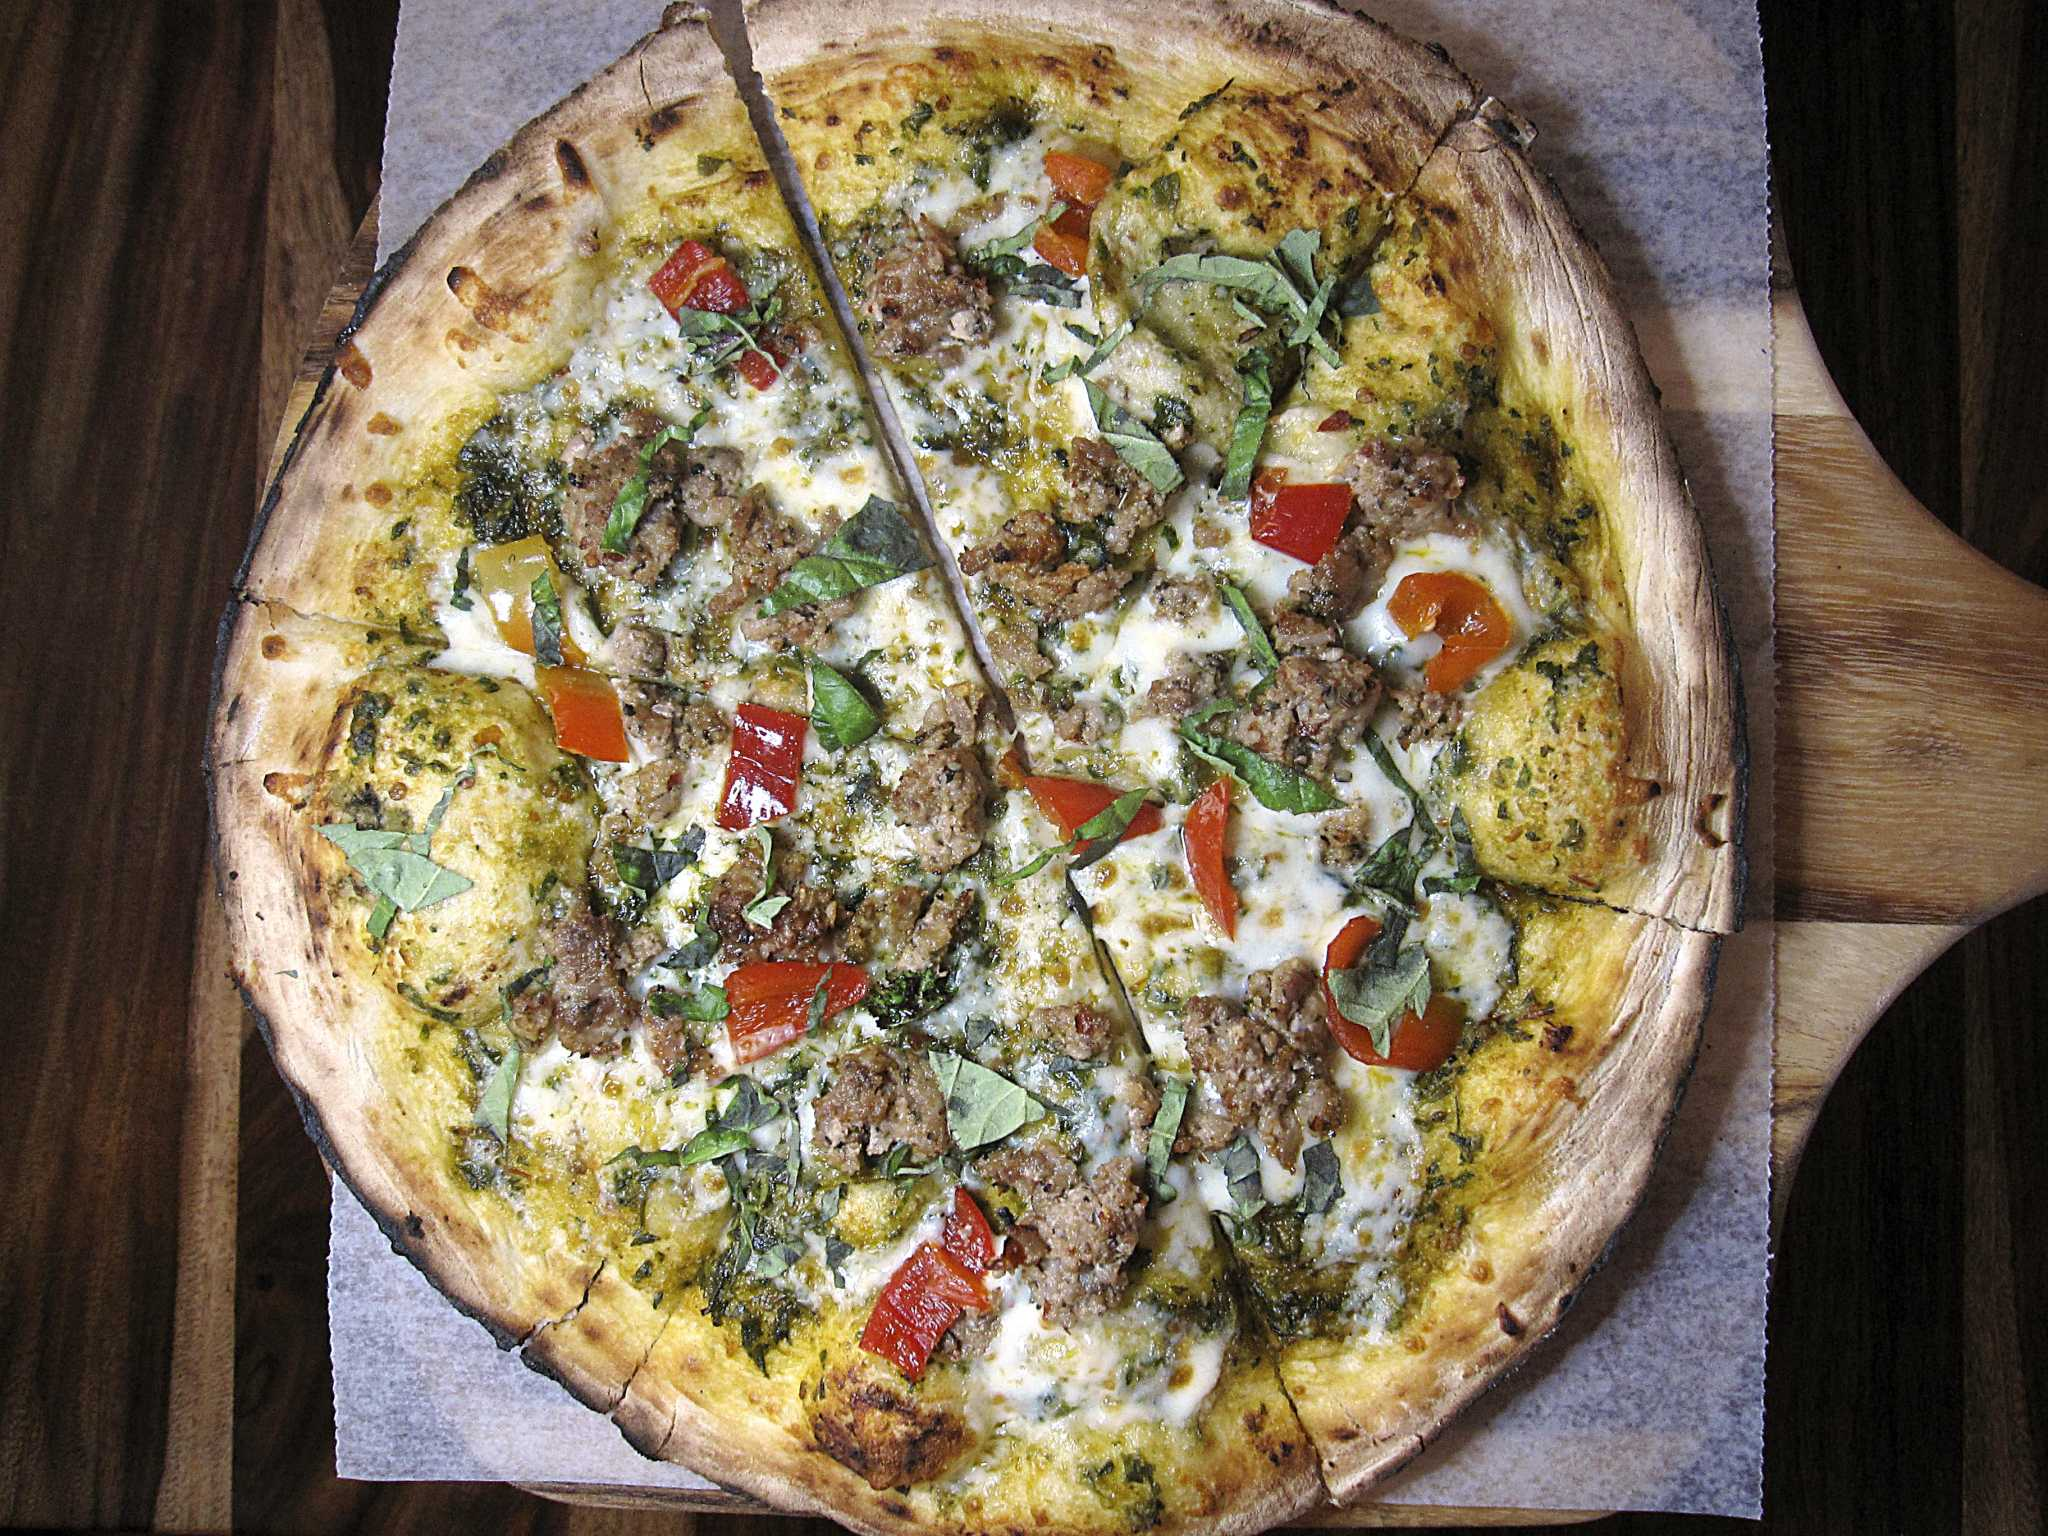 Review: 188 South brings artisan pizza, cocktails and small plates to New Braunfels